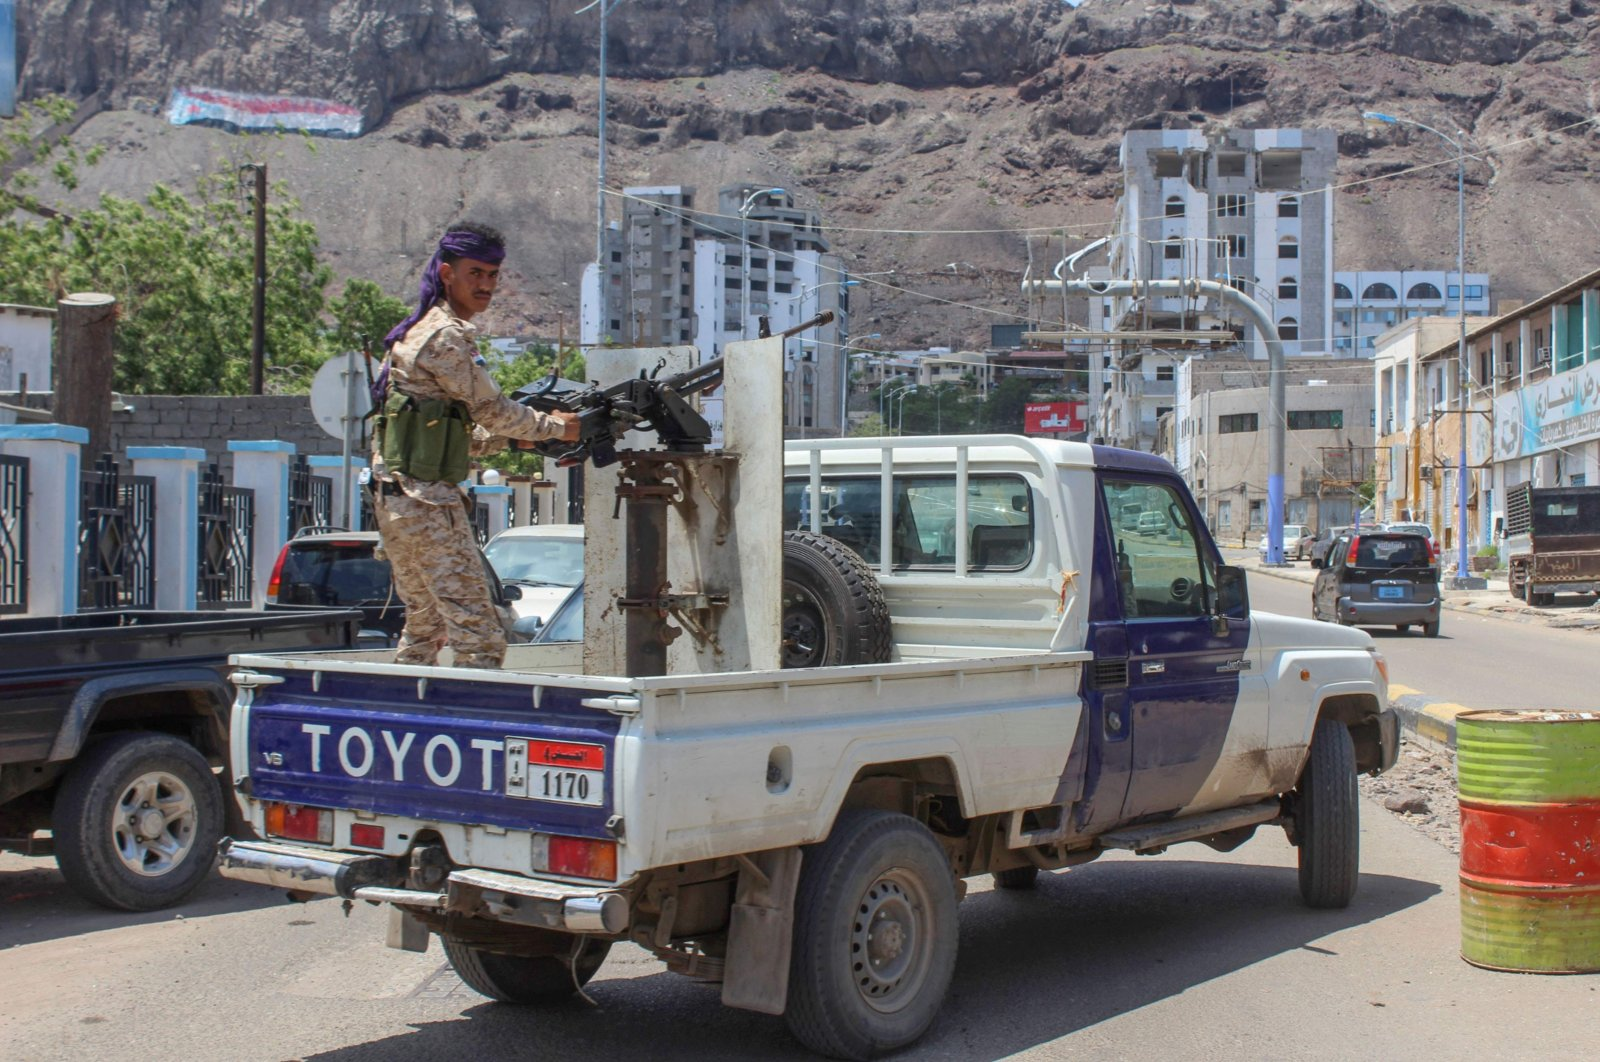 A fighter with the Southern Transitional Council (STC) mans a gun in the back of a vehicle after the council declared self-rule in the south, Aden, Yemen, April 26, 2020. (AFP Photo)